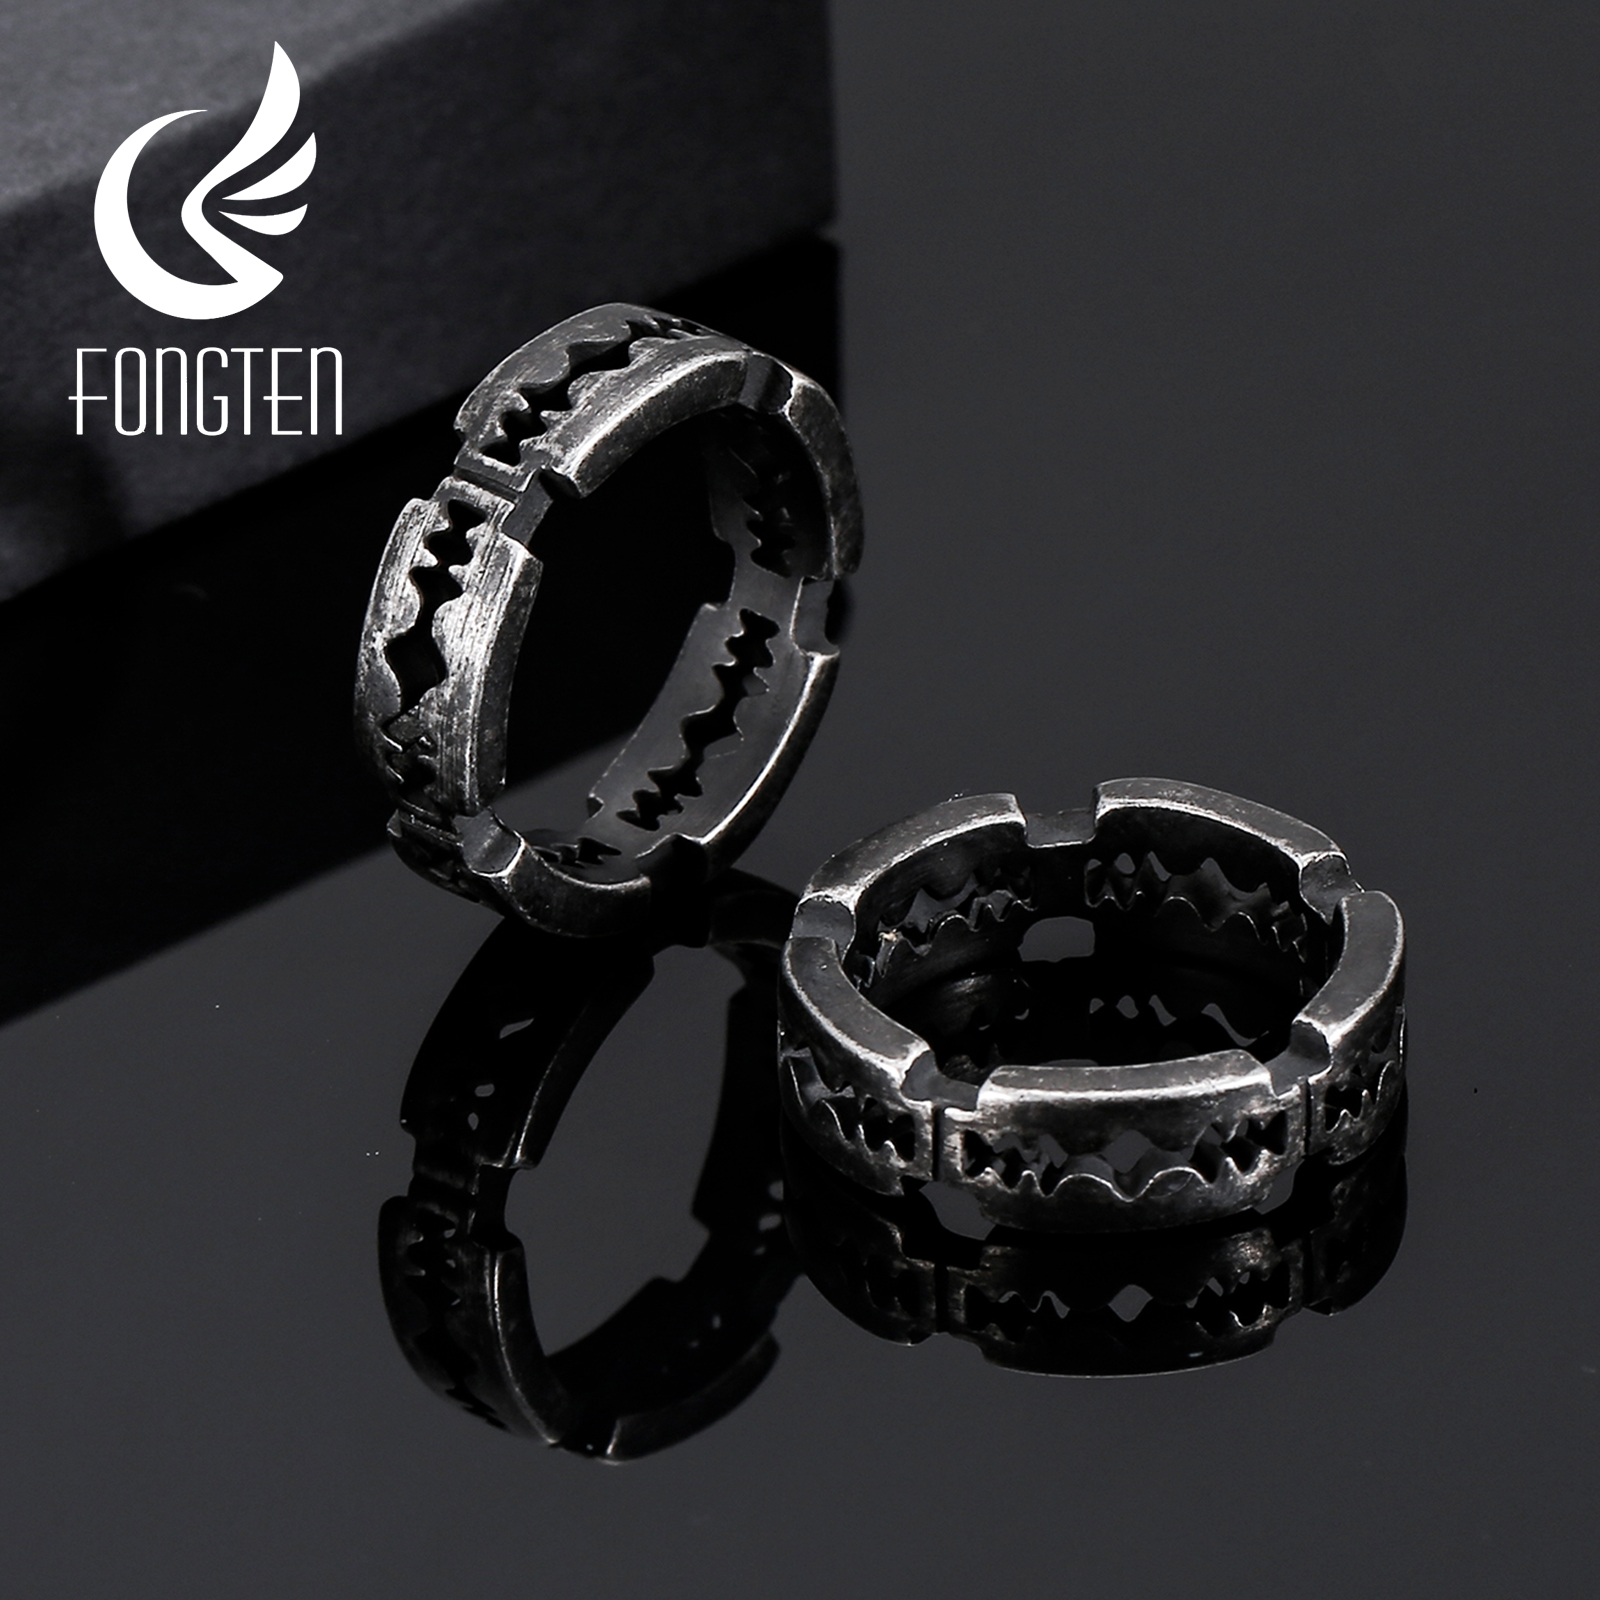 Fongten Gothic Style Blade Shape Ring Black Stainless Steel Vintage Viking Men Hippie Big Rings 2020 Fashion Jewelry(China)